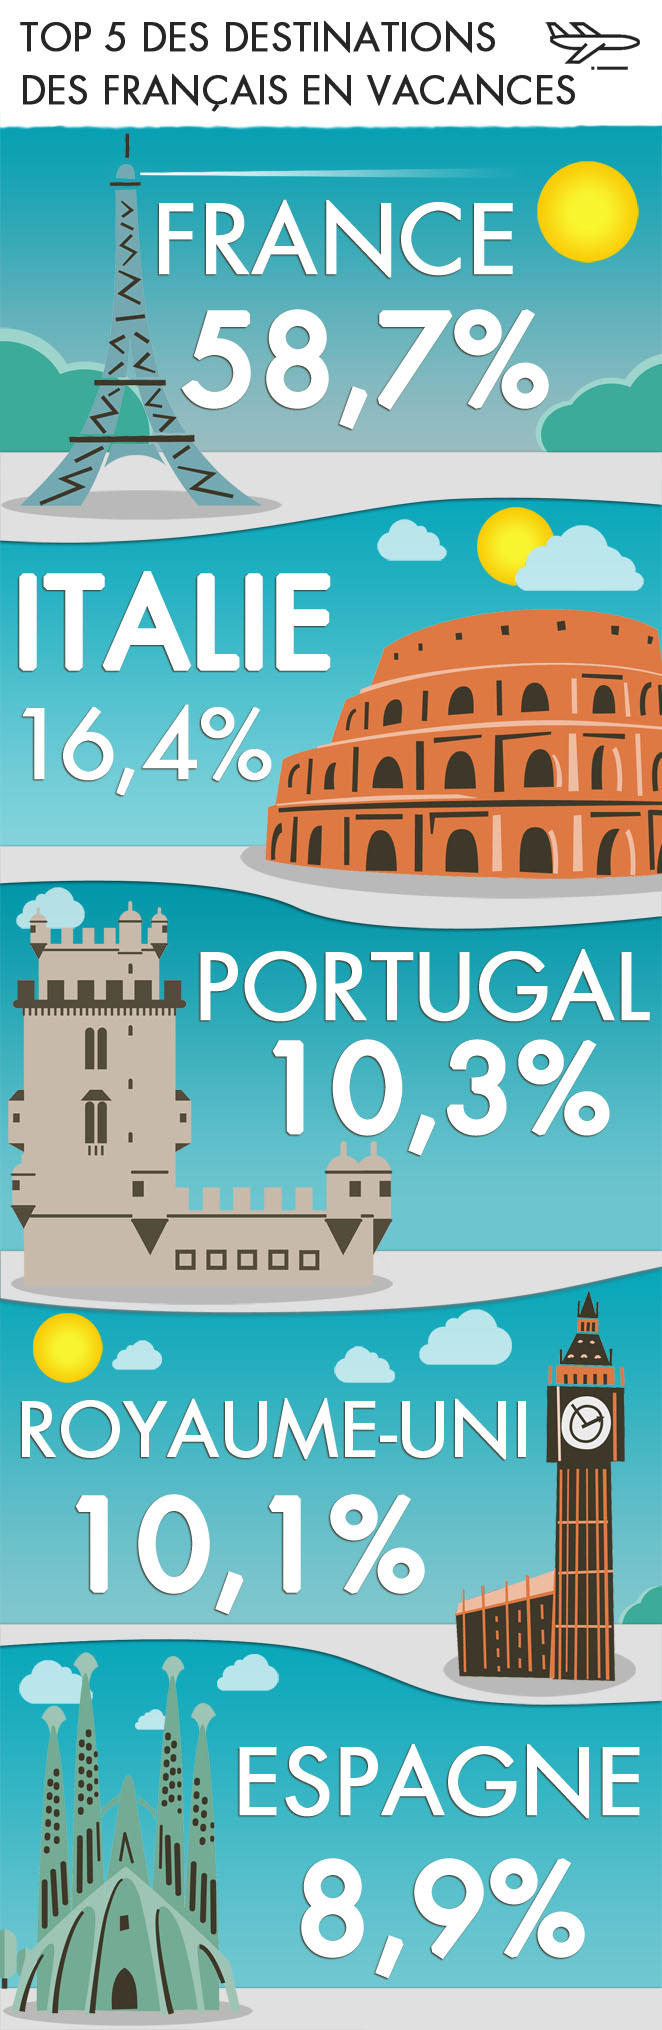 infographie top destination.jpg